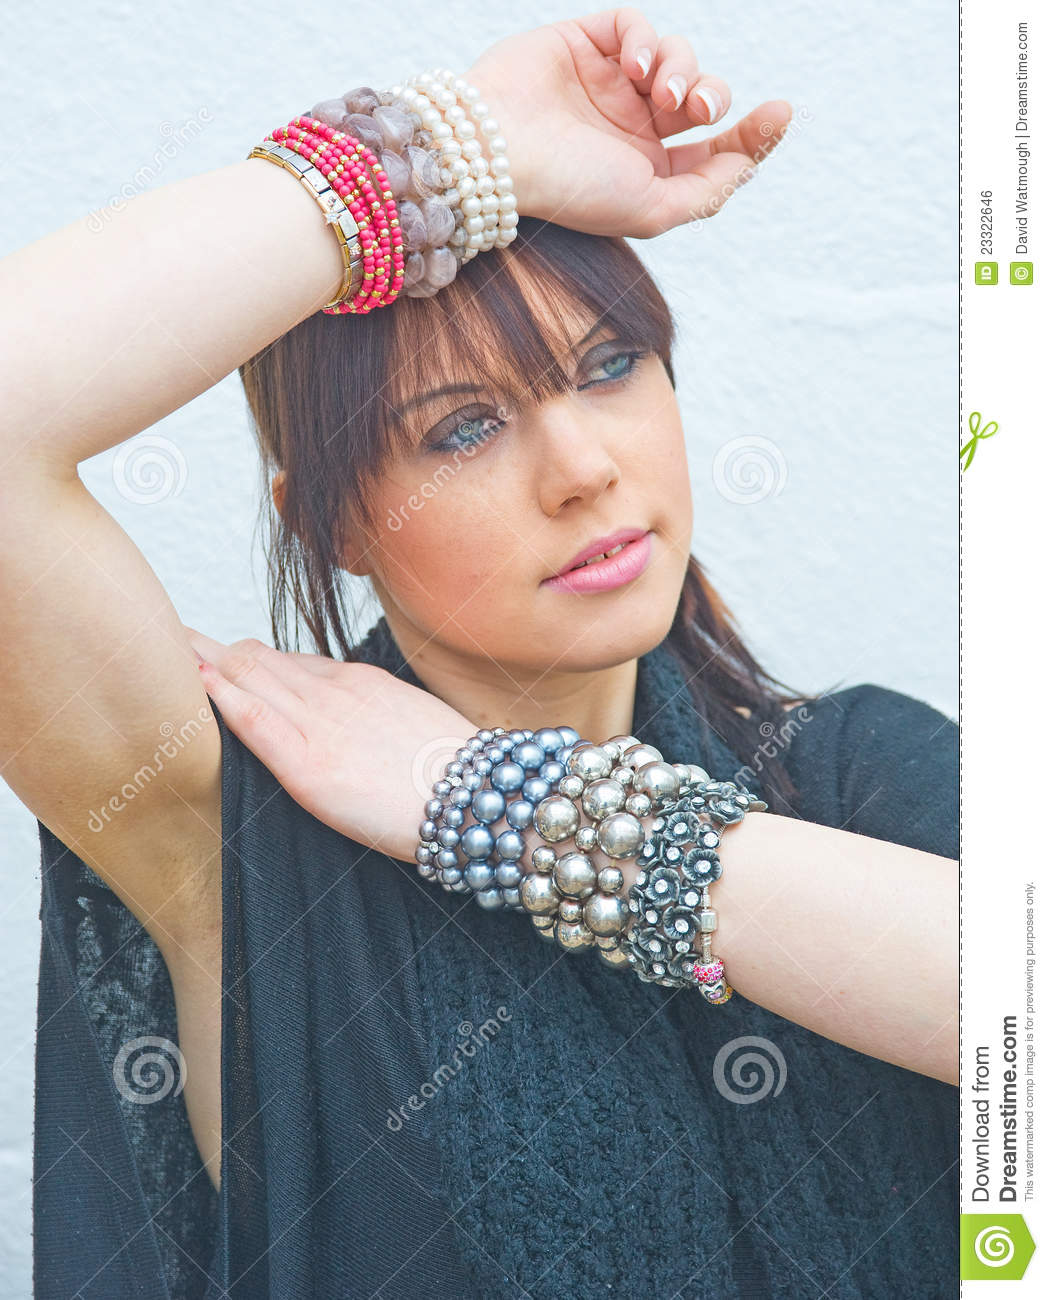 Girl Wearing Jewelry On Both Wrists. . Royalty Free Stock ...